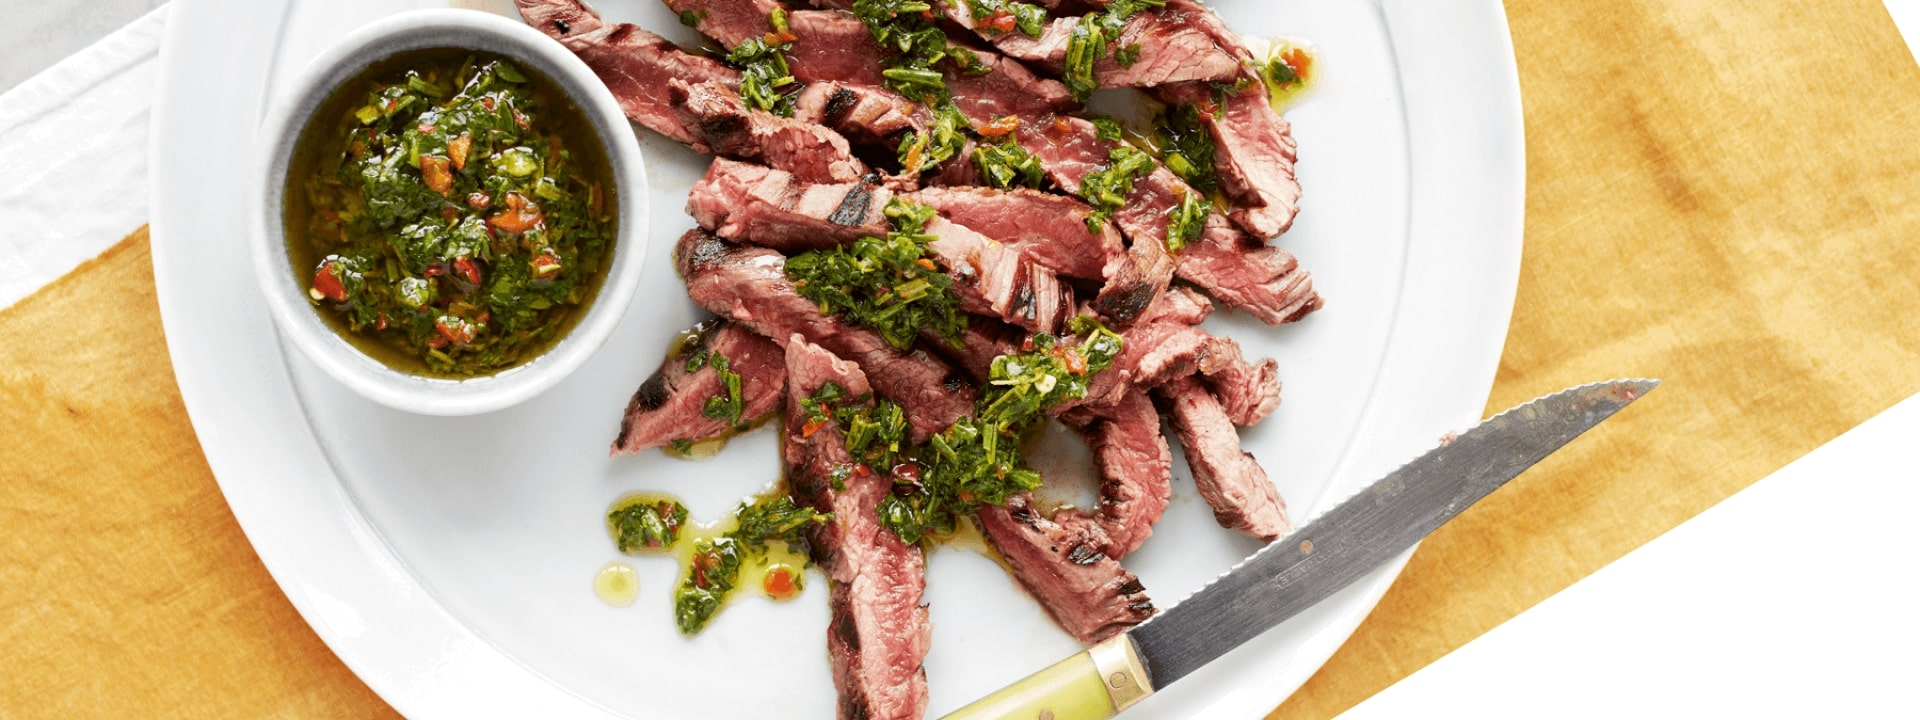 CroppedFocusedImage192072050-50-BAVETTE-STEAK-WITH-ROSEMARY-CHIMICHURRI